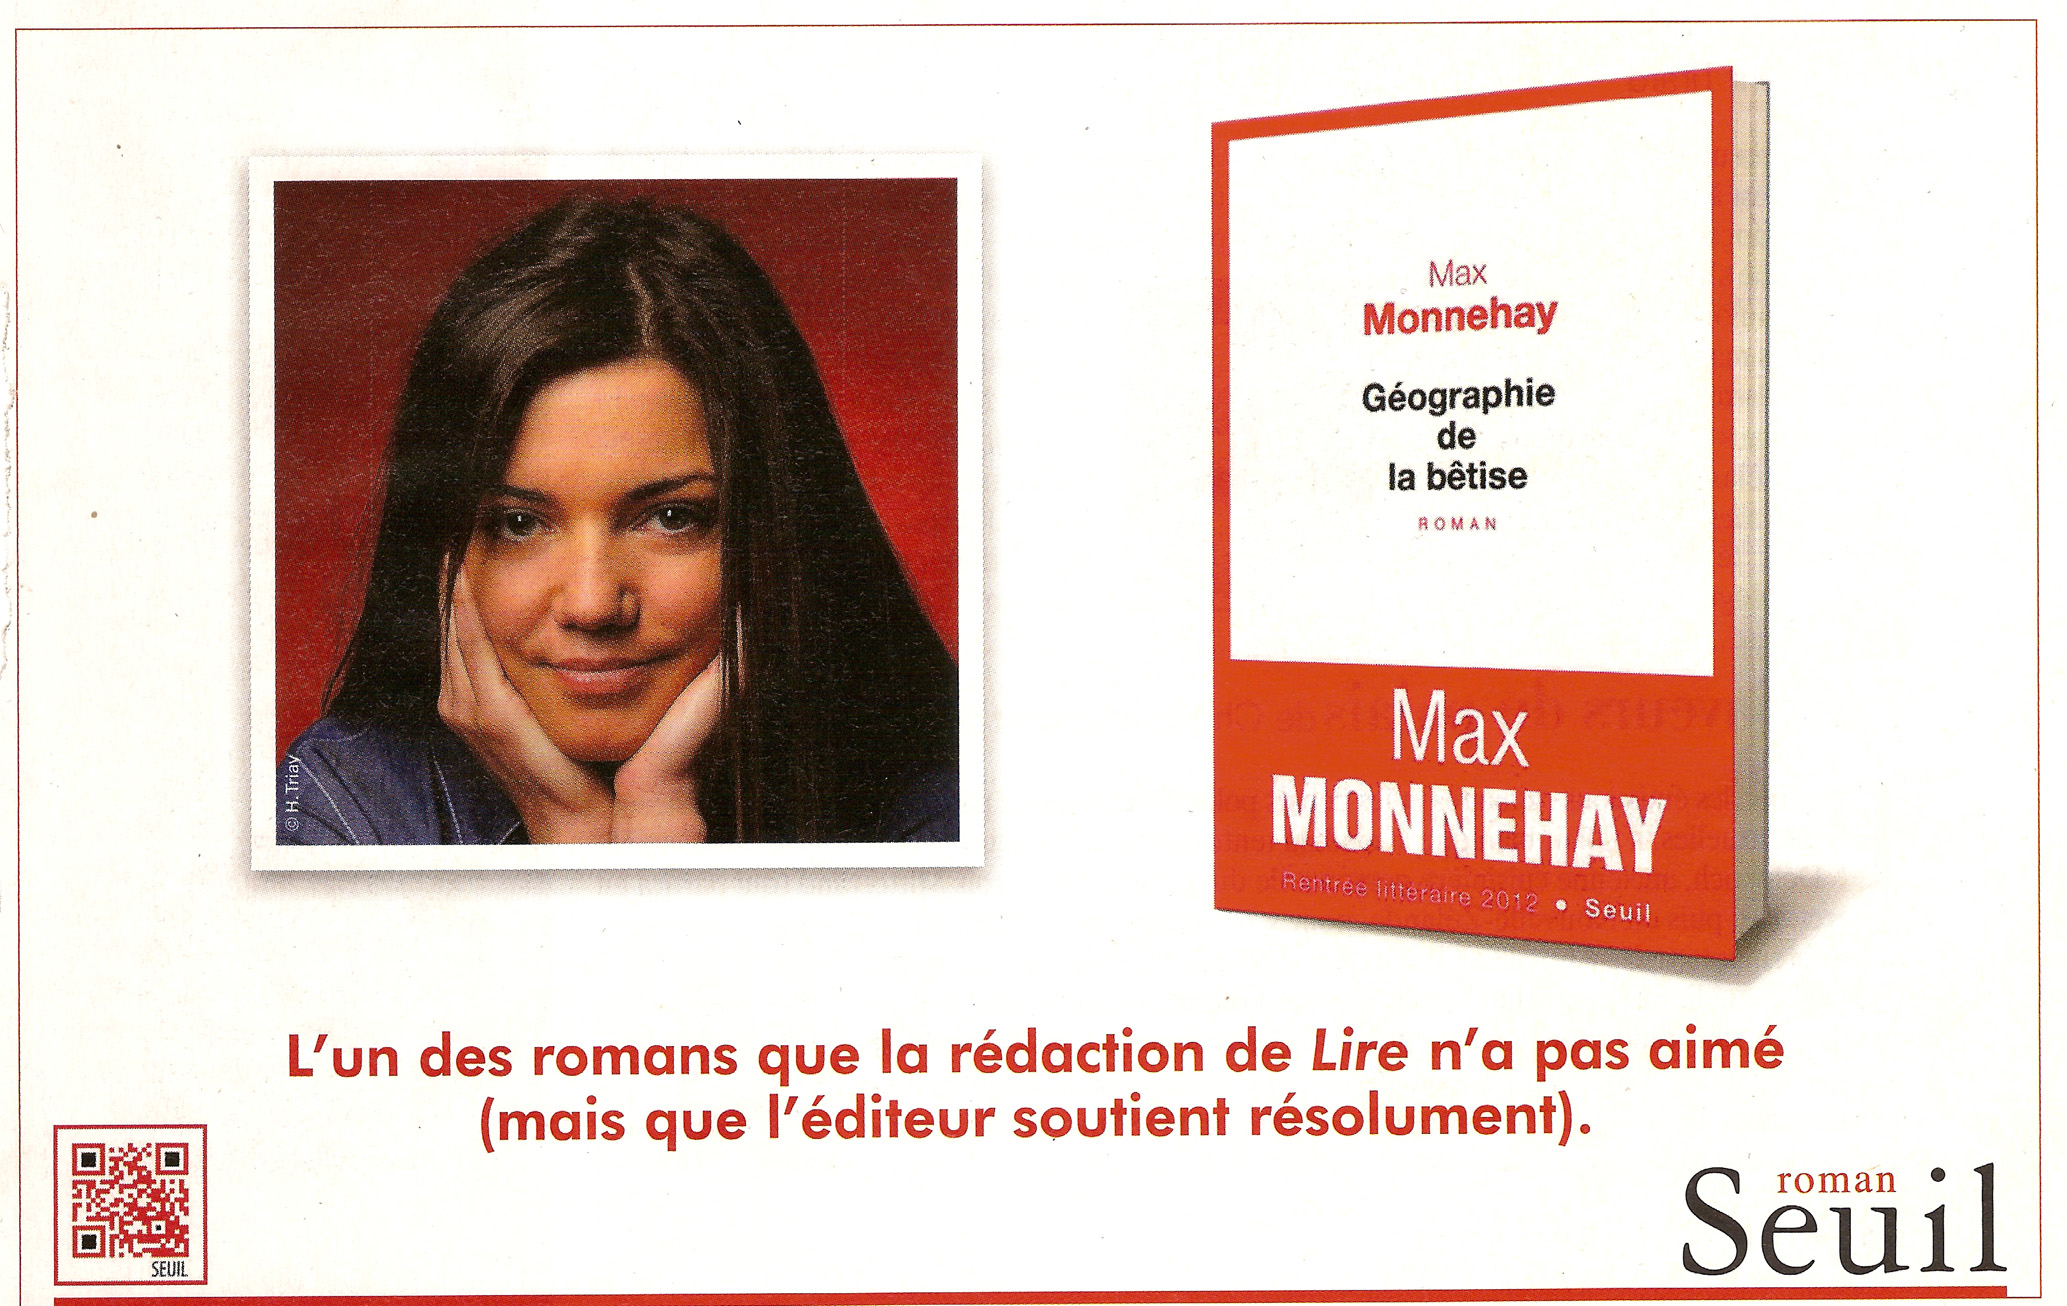 publicite-Max-Monnehay-Seuil2.jpg